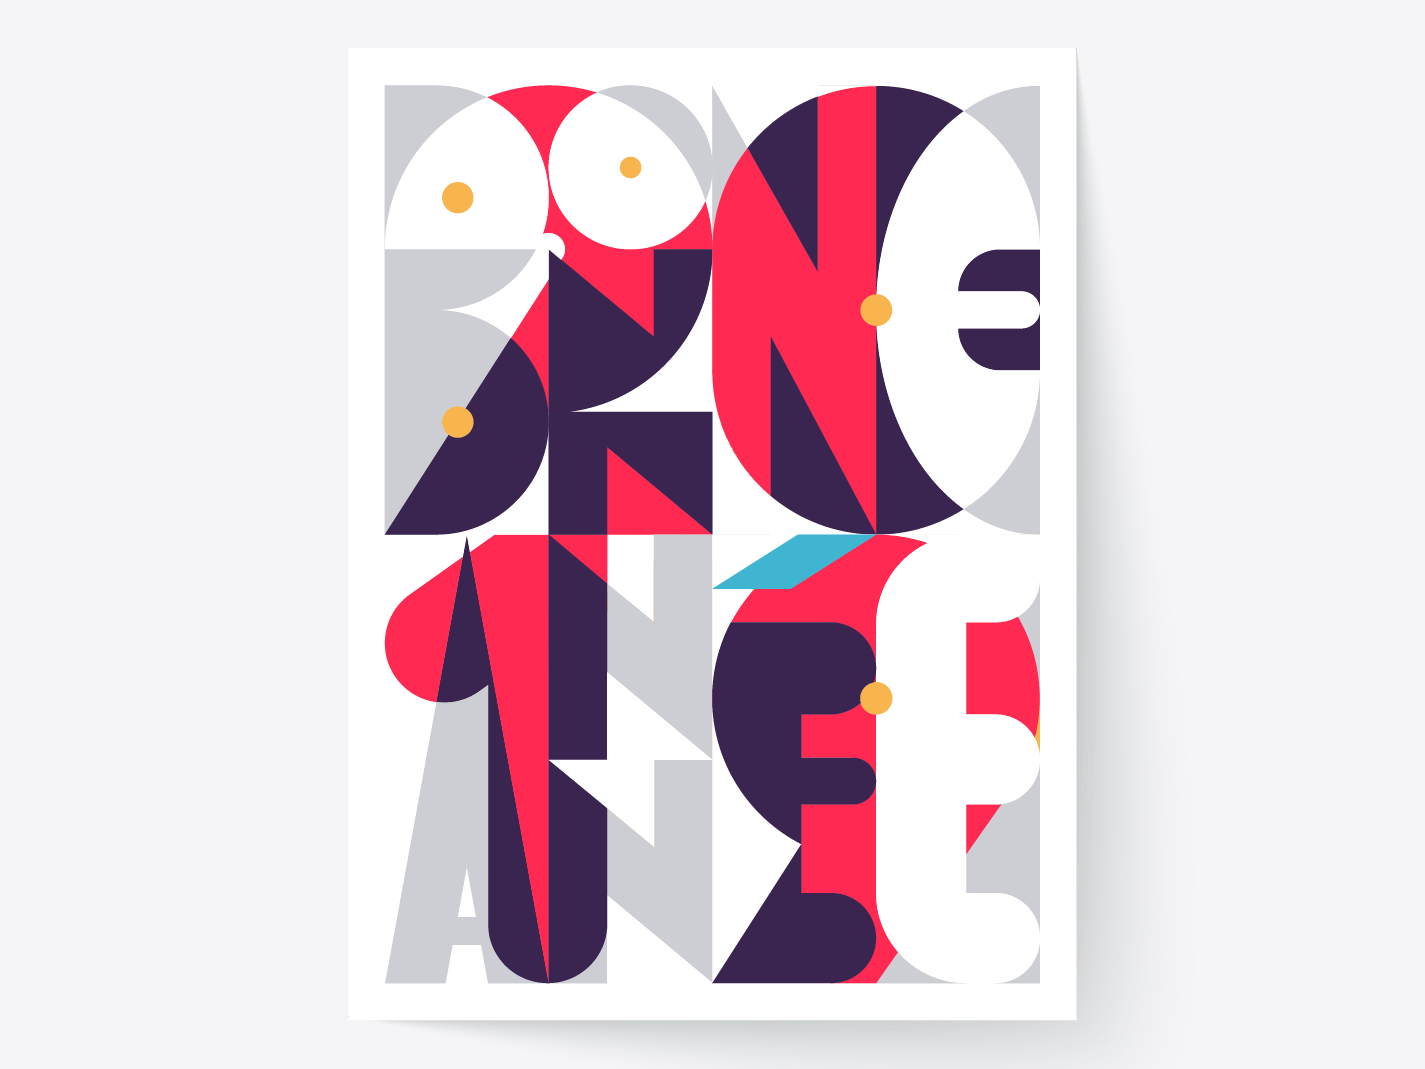 Bonne Année lettering artist typographie geometric french poster collection poster font design graphic  design poster design typo letter typography